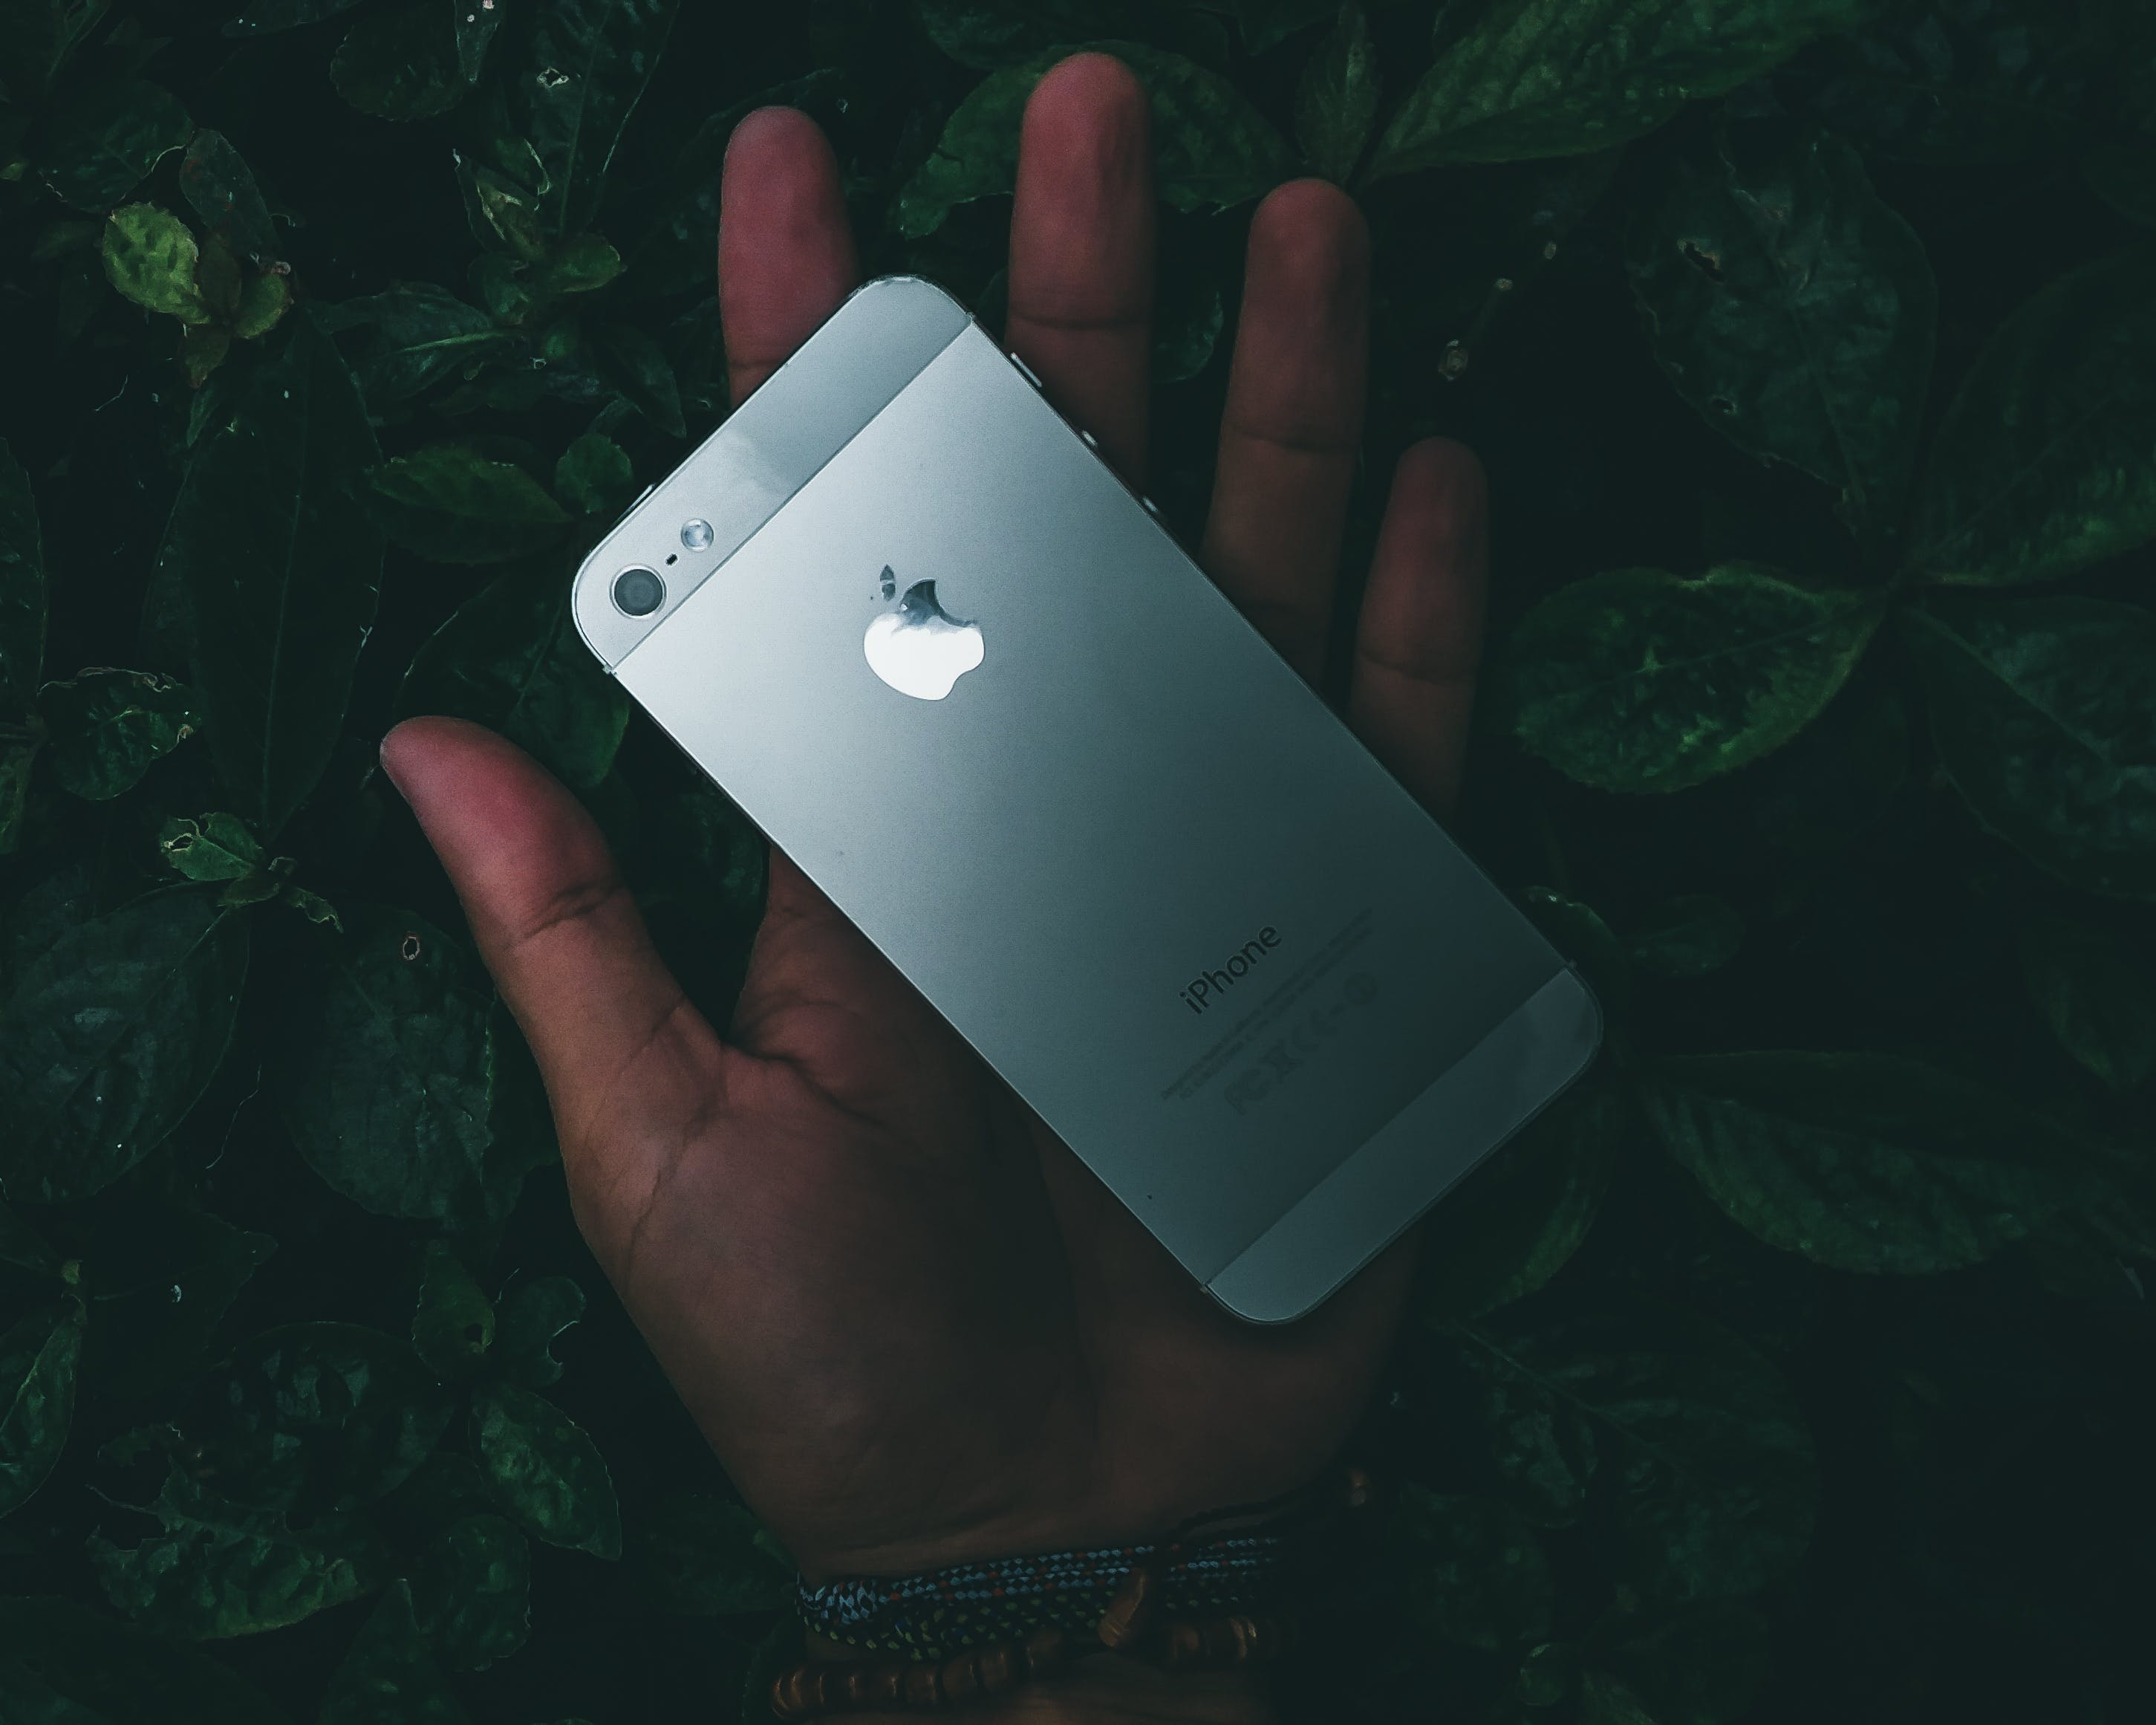 Iphone 5 on Person's Palm